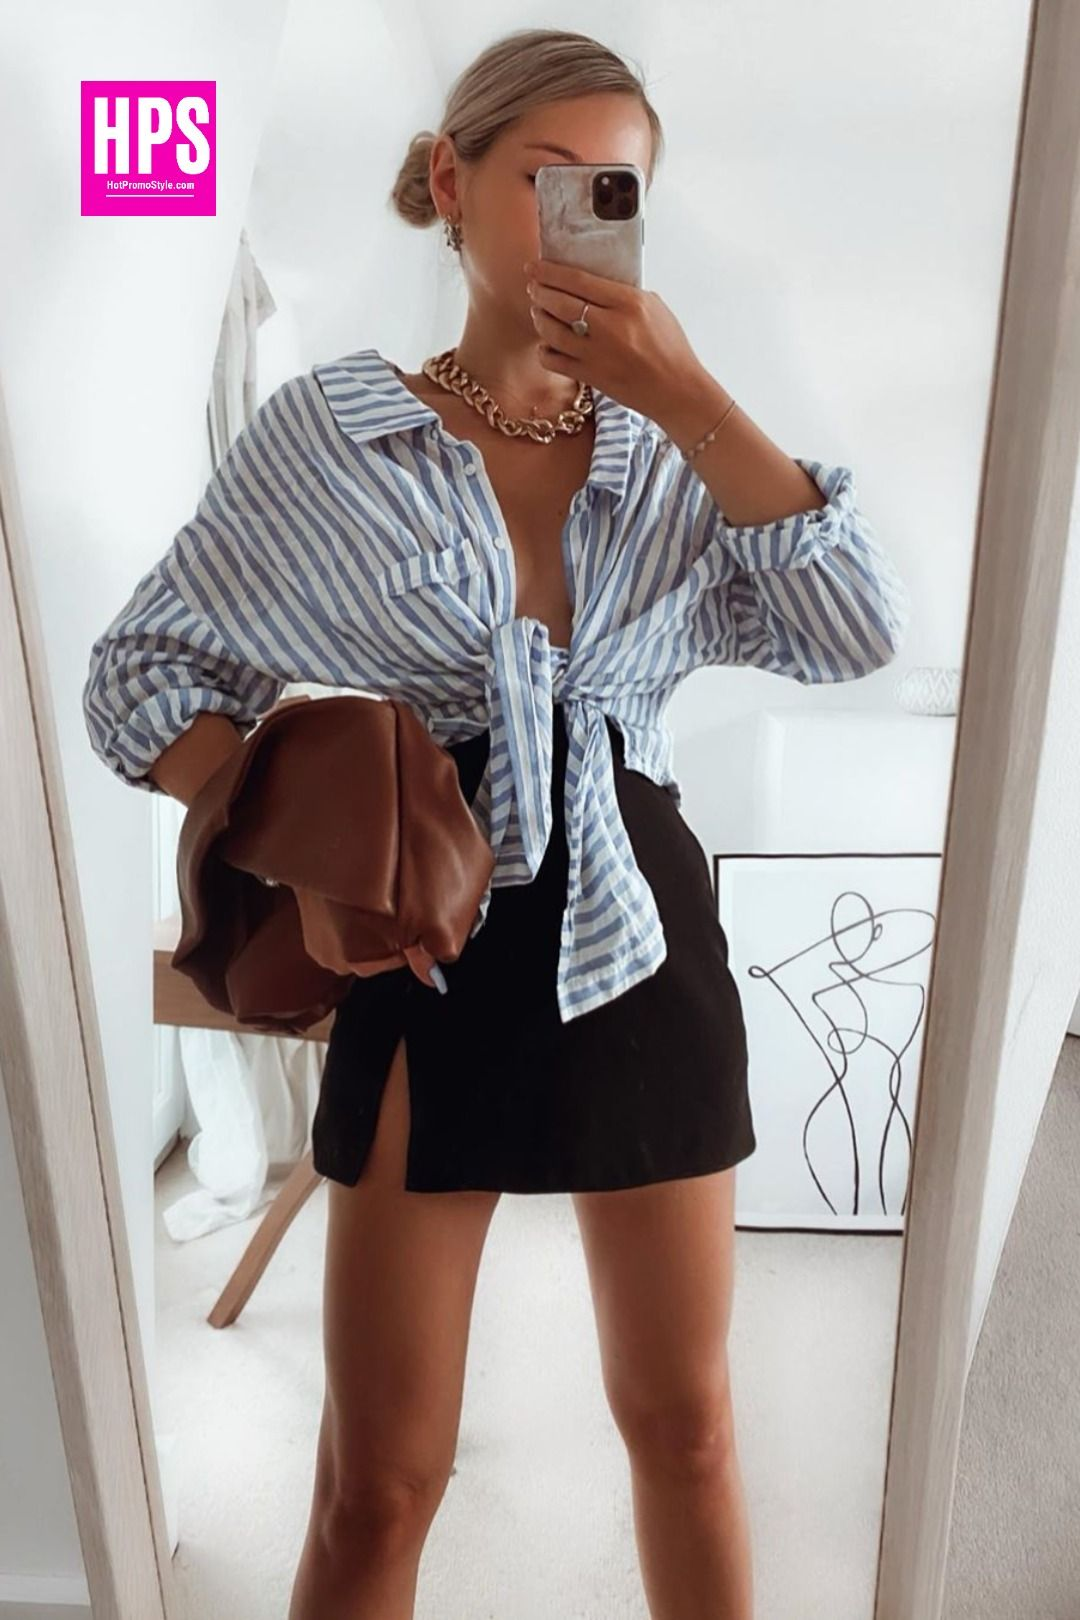 Quickly whilst it's still summer! The simplicity of this outfit makes it special for me. This shirt is an old wardrobe staple but I found a dupe. #outfitinspiration #falloutfits #fashioninspo #accessoriesinspo #styleoftheday #londonstyle #styleblogger #fashionblogger #ootdfashion #londonist #zaramania #ootdinspiration #outfitoftheday #stylediary #summeroutfits #travellondon #londondays #styleinfluencer #fashioninfluencer #mylookoftheday #outfitselfie #zaraoutfit #styledaily #autumnoutfit